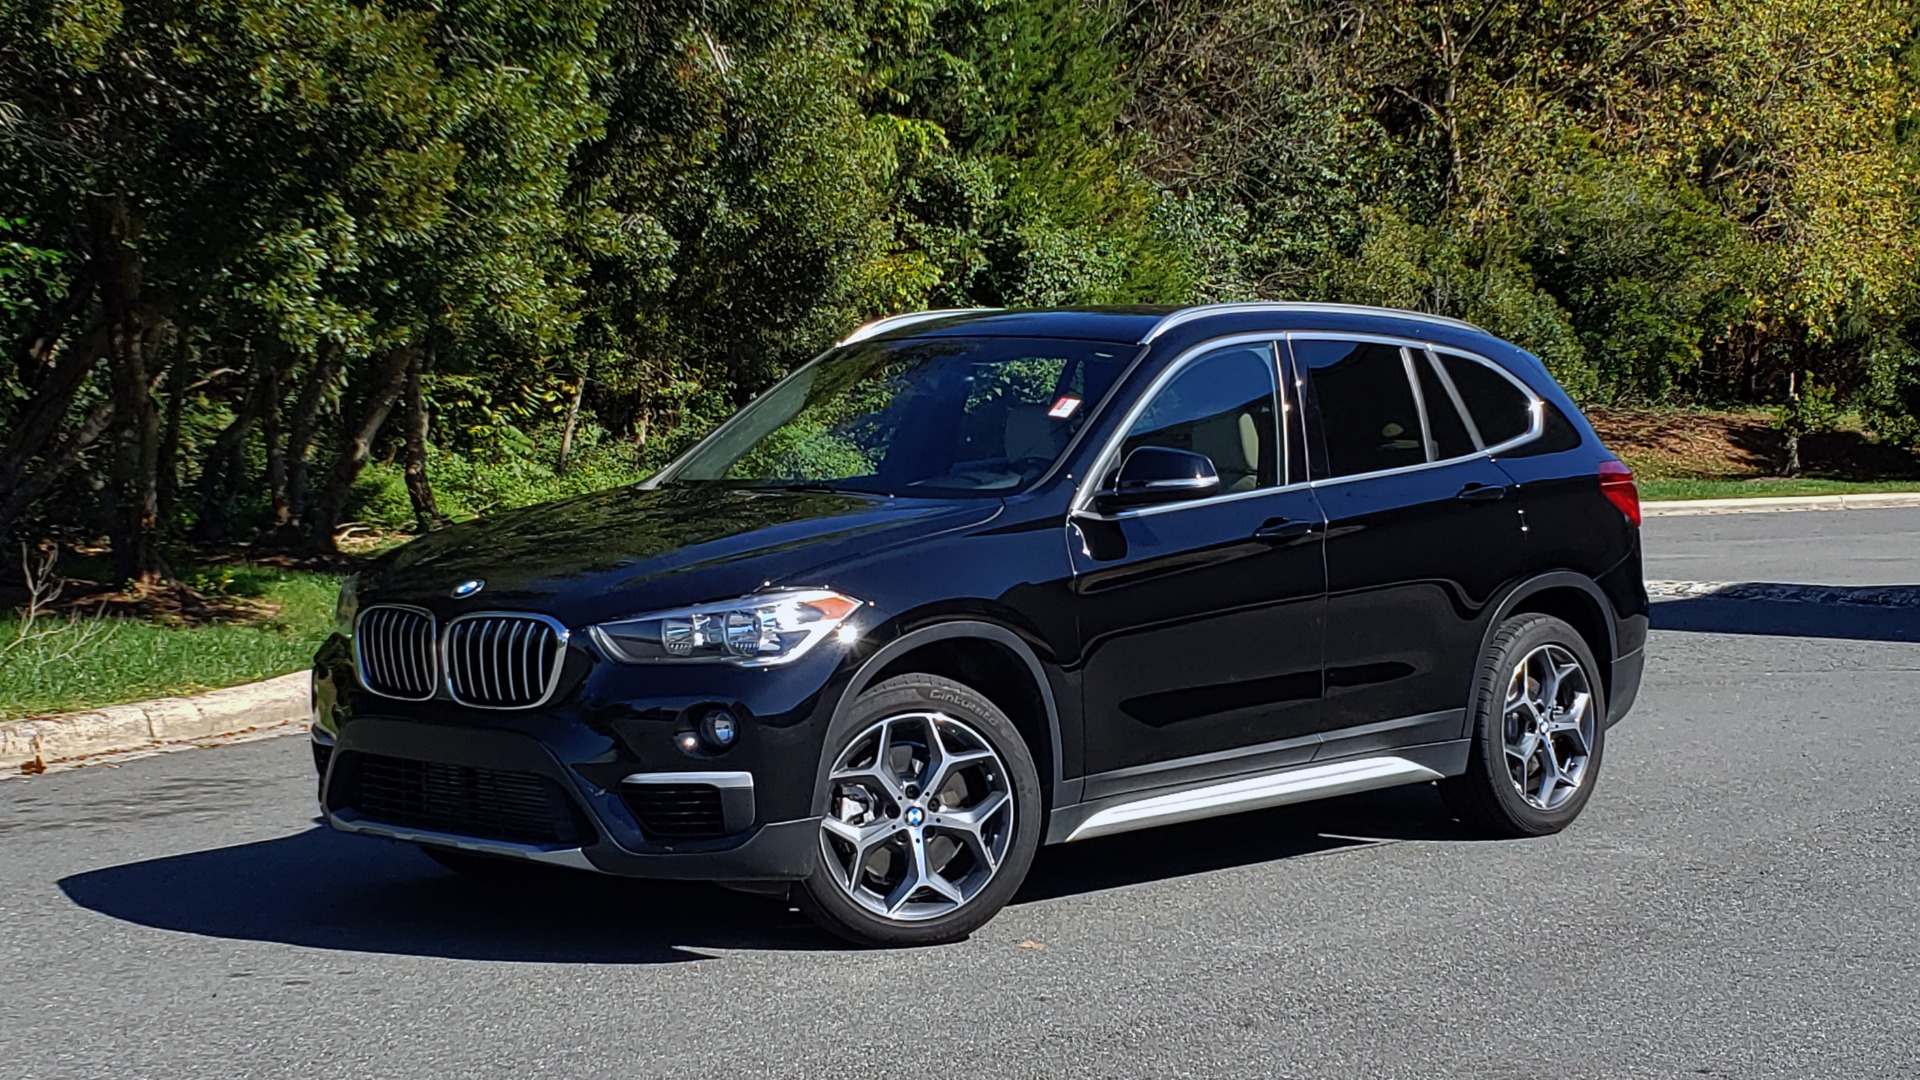 Used 2018 BMW X1 SDRIVE28I / HEATED SEATS / 4-CYL / 8-SPD AUTO / REARVIEW for sale Sold at Formula Imports in Charlotte NC 28227 1